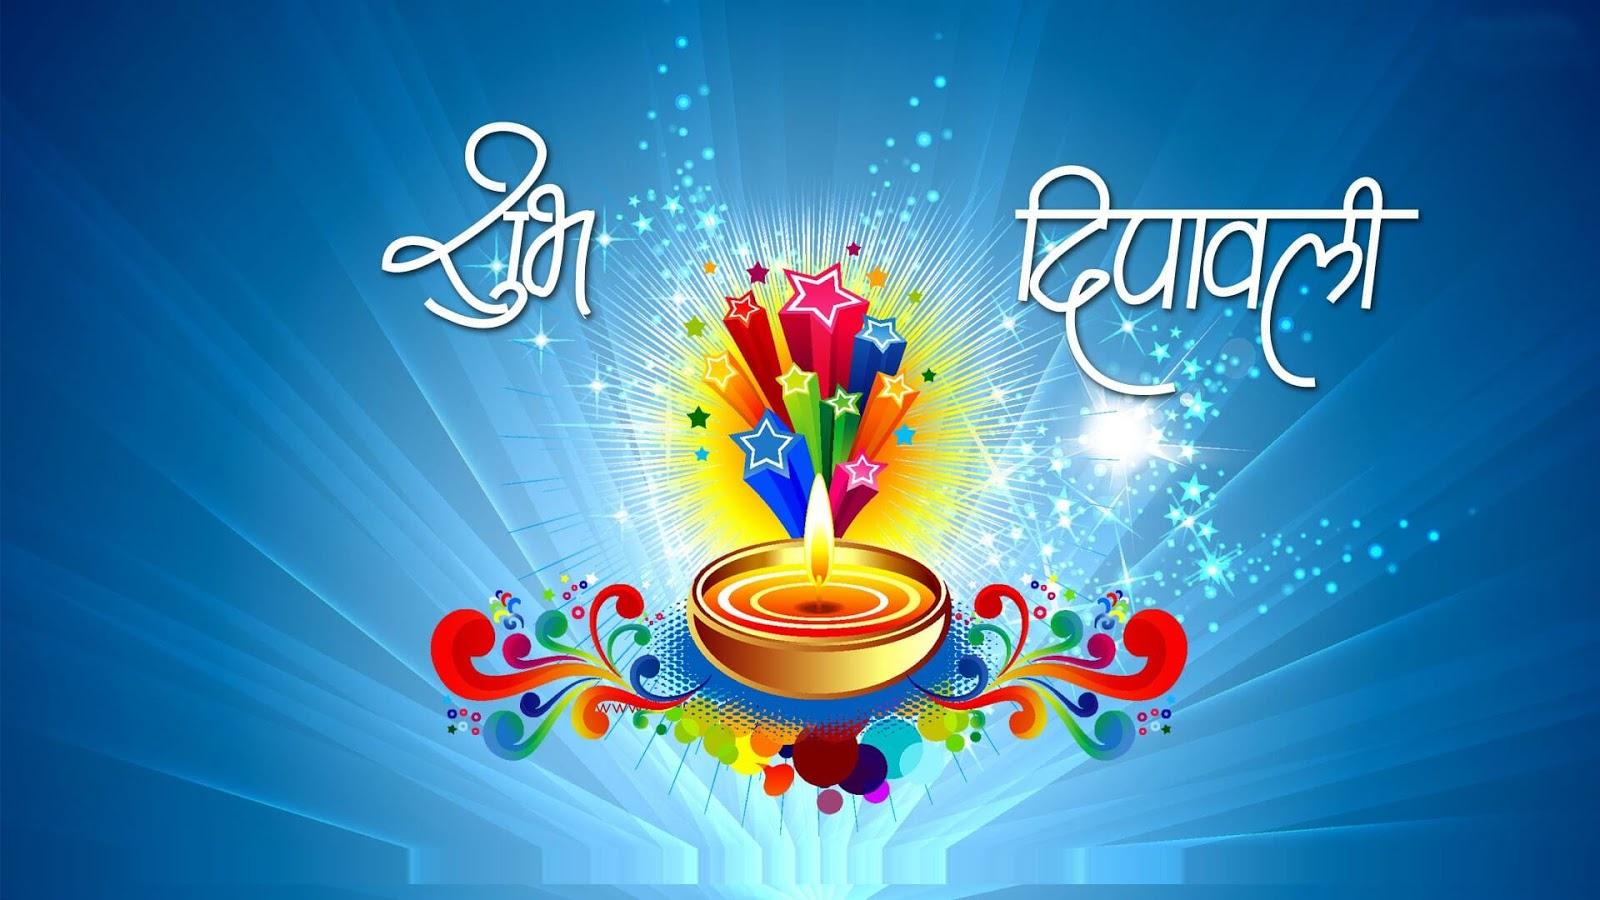 happy diwali wallpapers and images 3 - happy diwali 2016